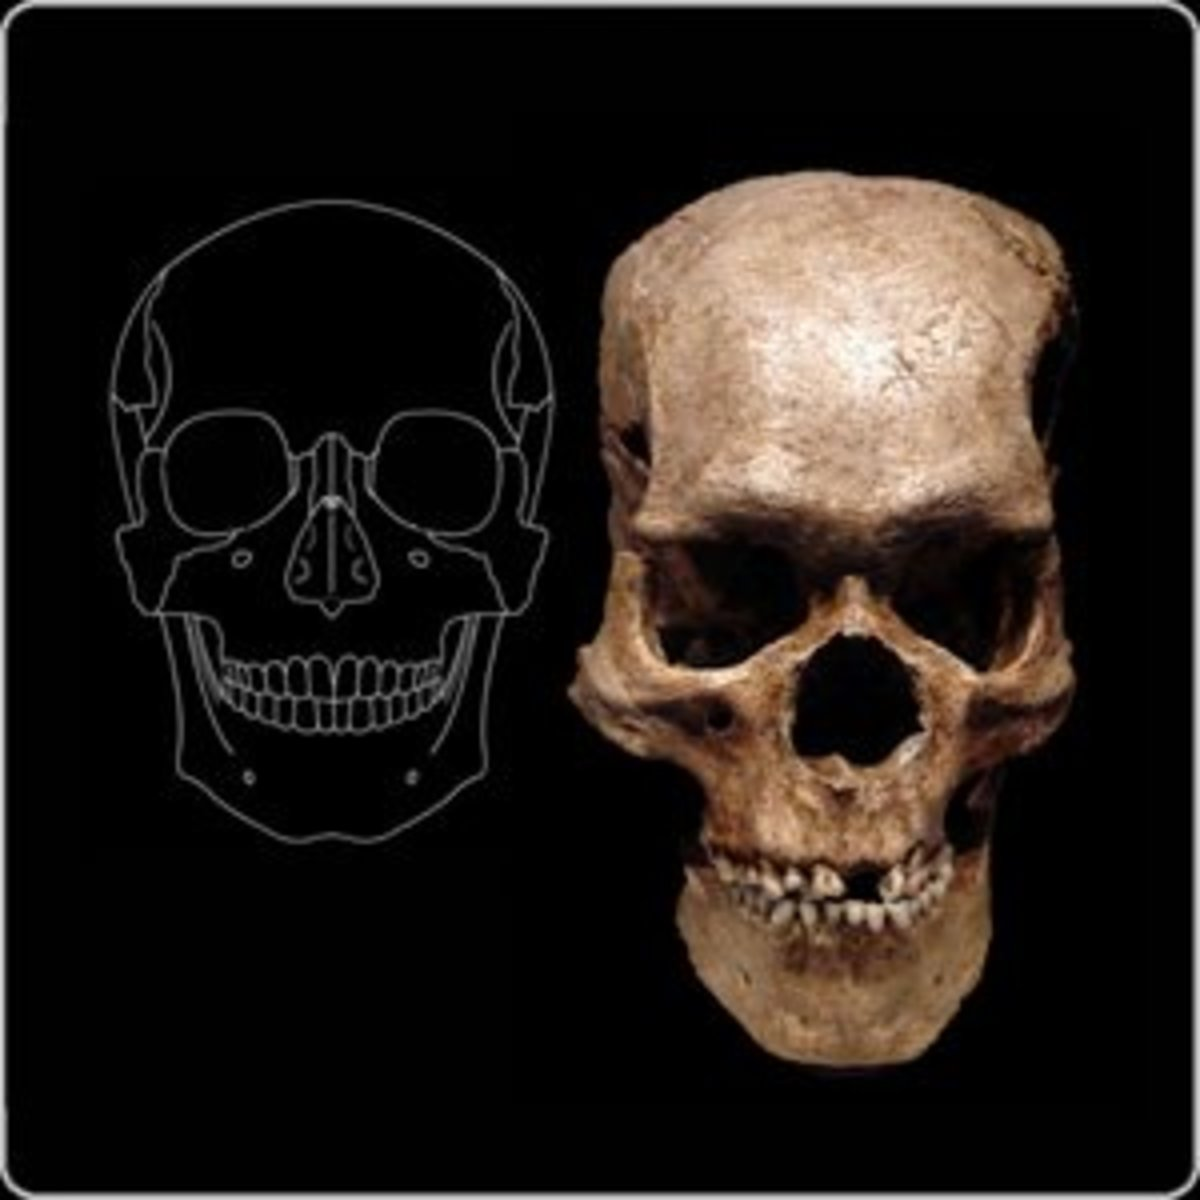 Skull comparison: Was this a giant?